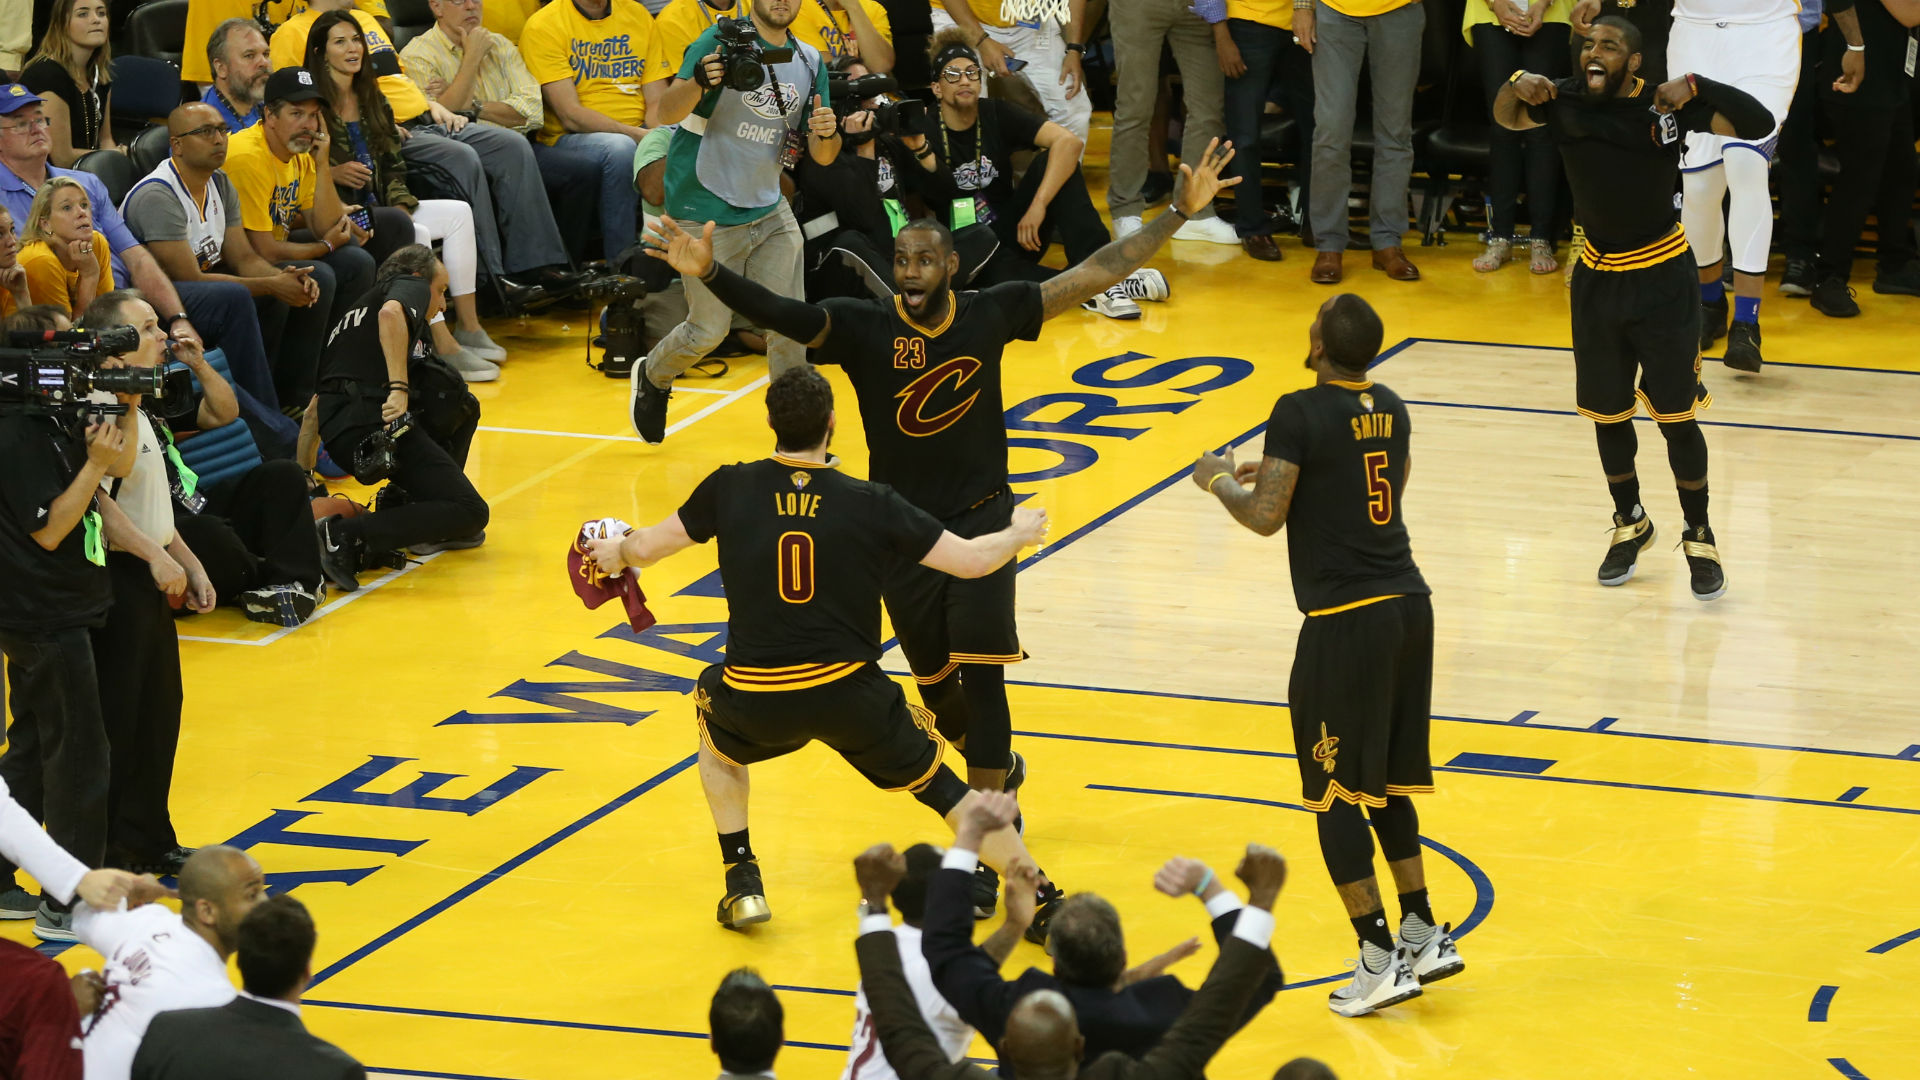 NBA Christmas Day 2018: LeBron James vs Golden State Warriors and other great rivalries in NBA ...